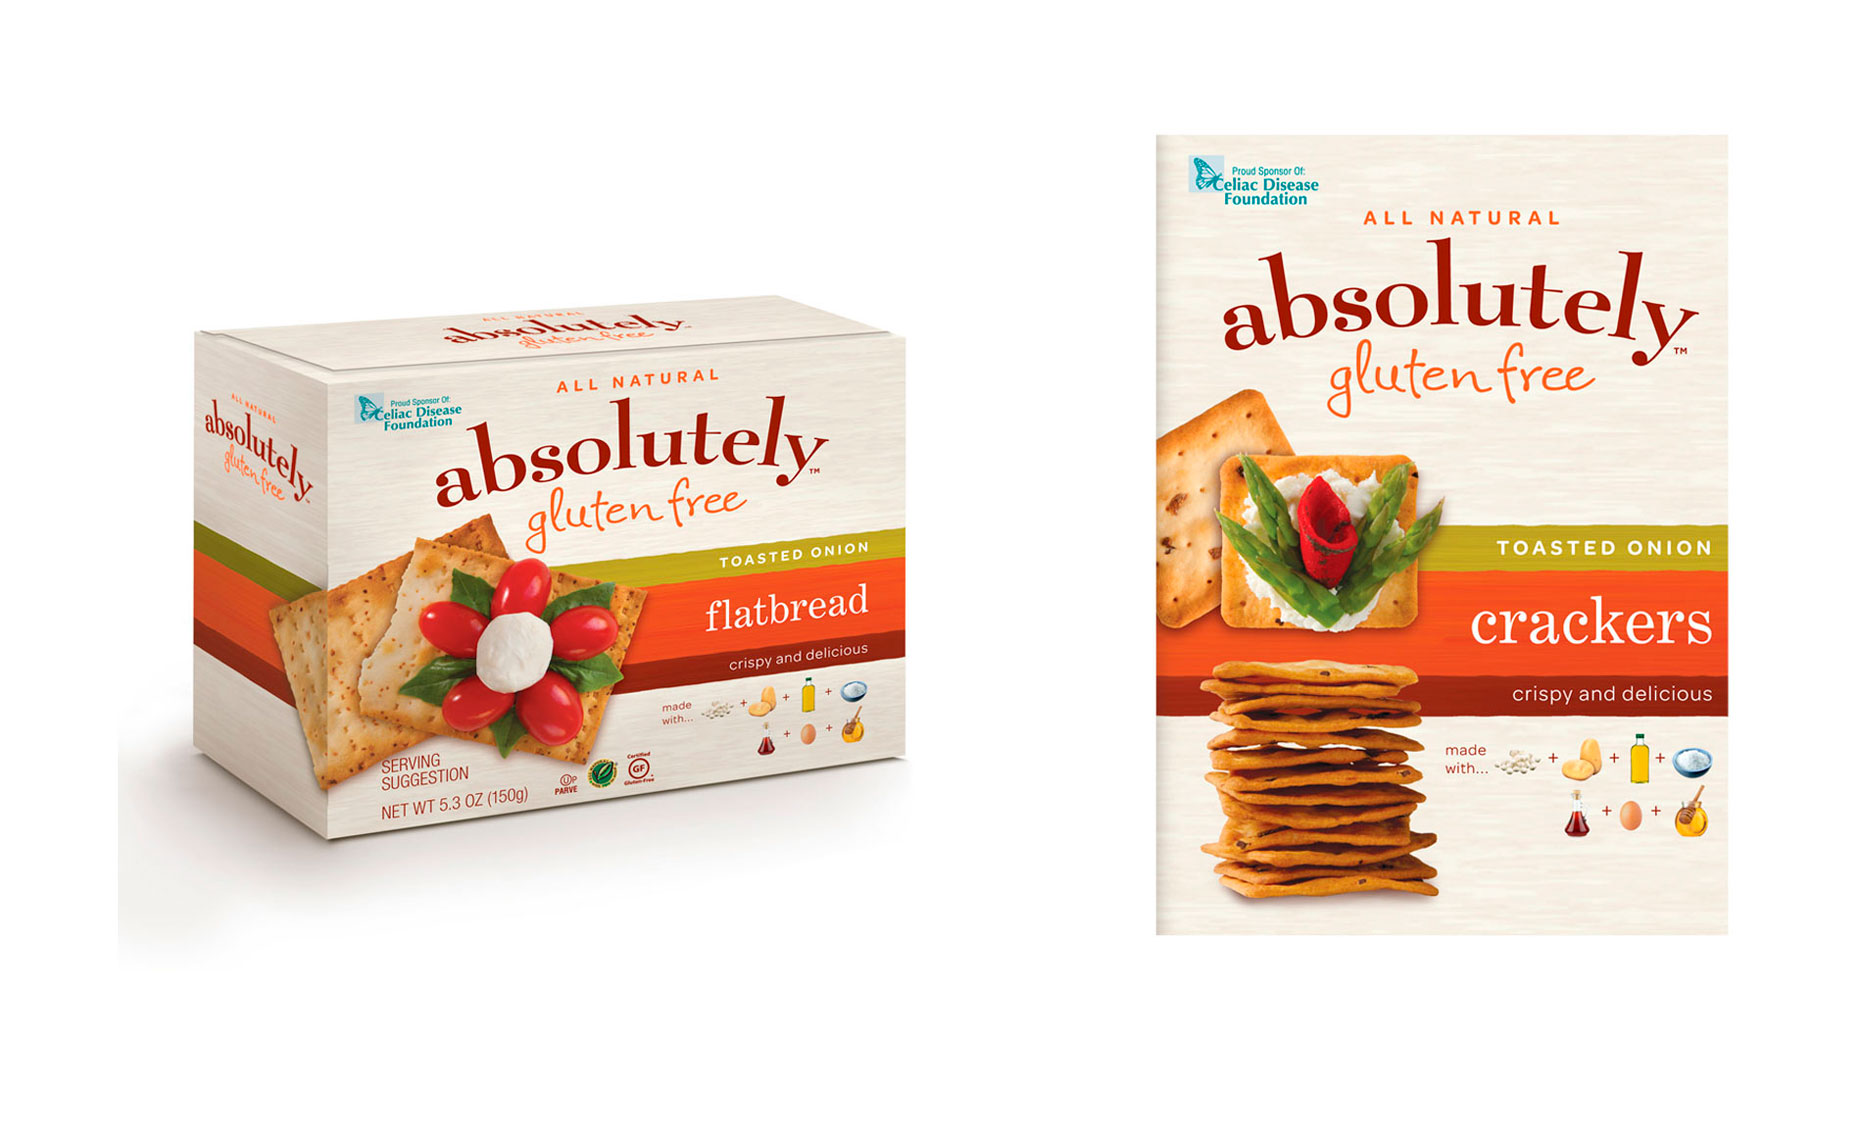 ABSOLUTELY gluten free crackers packaging photography